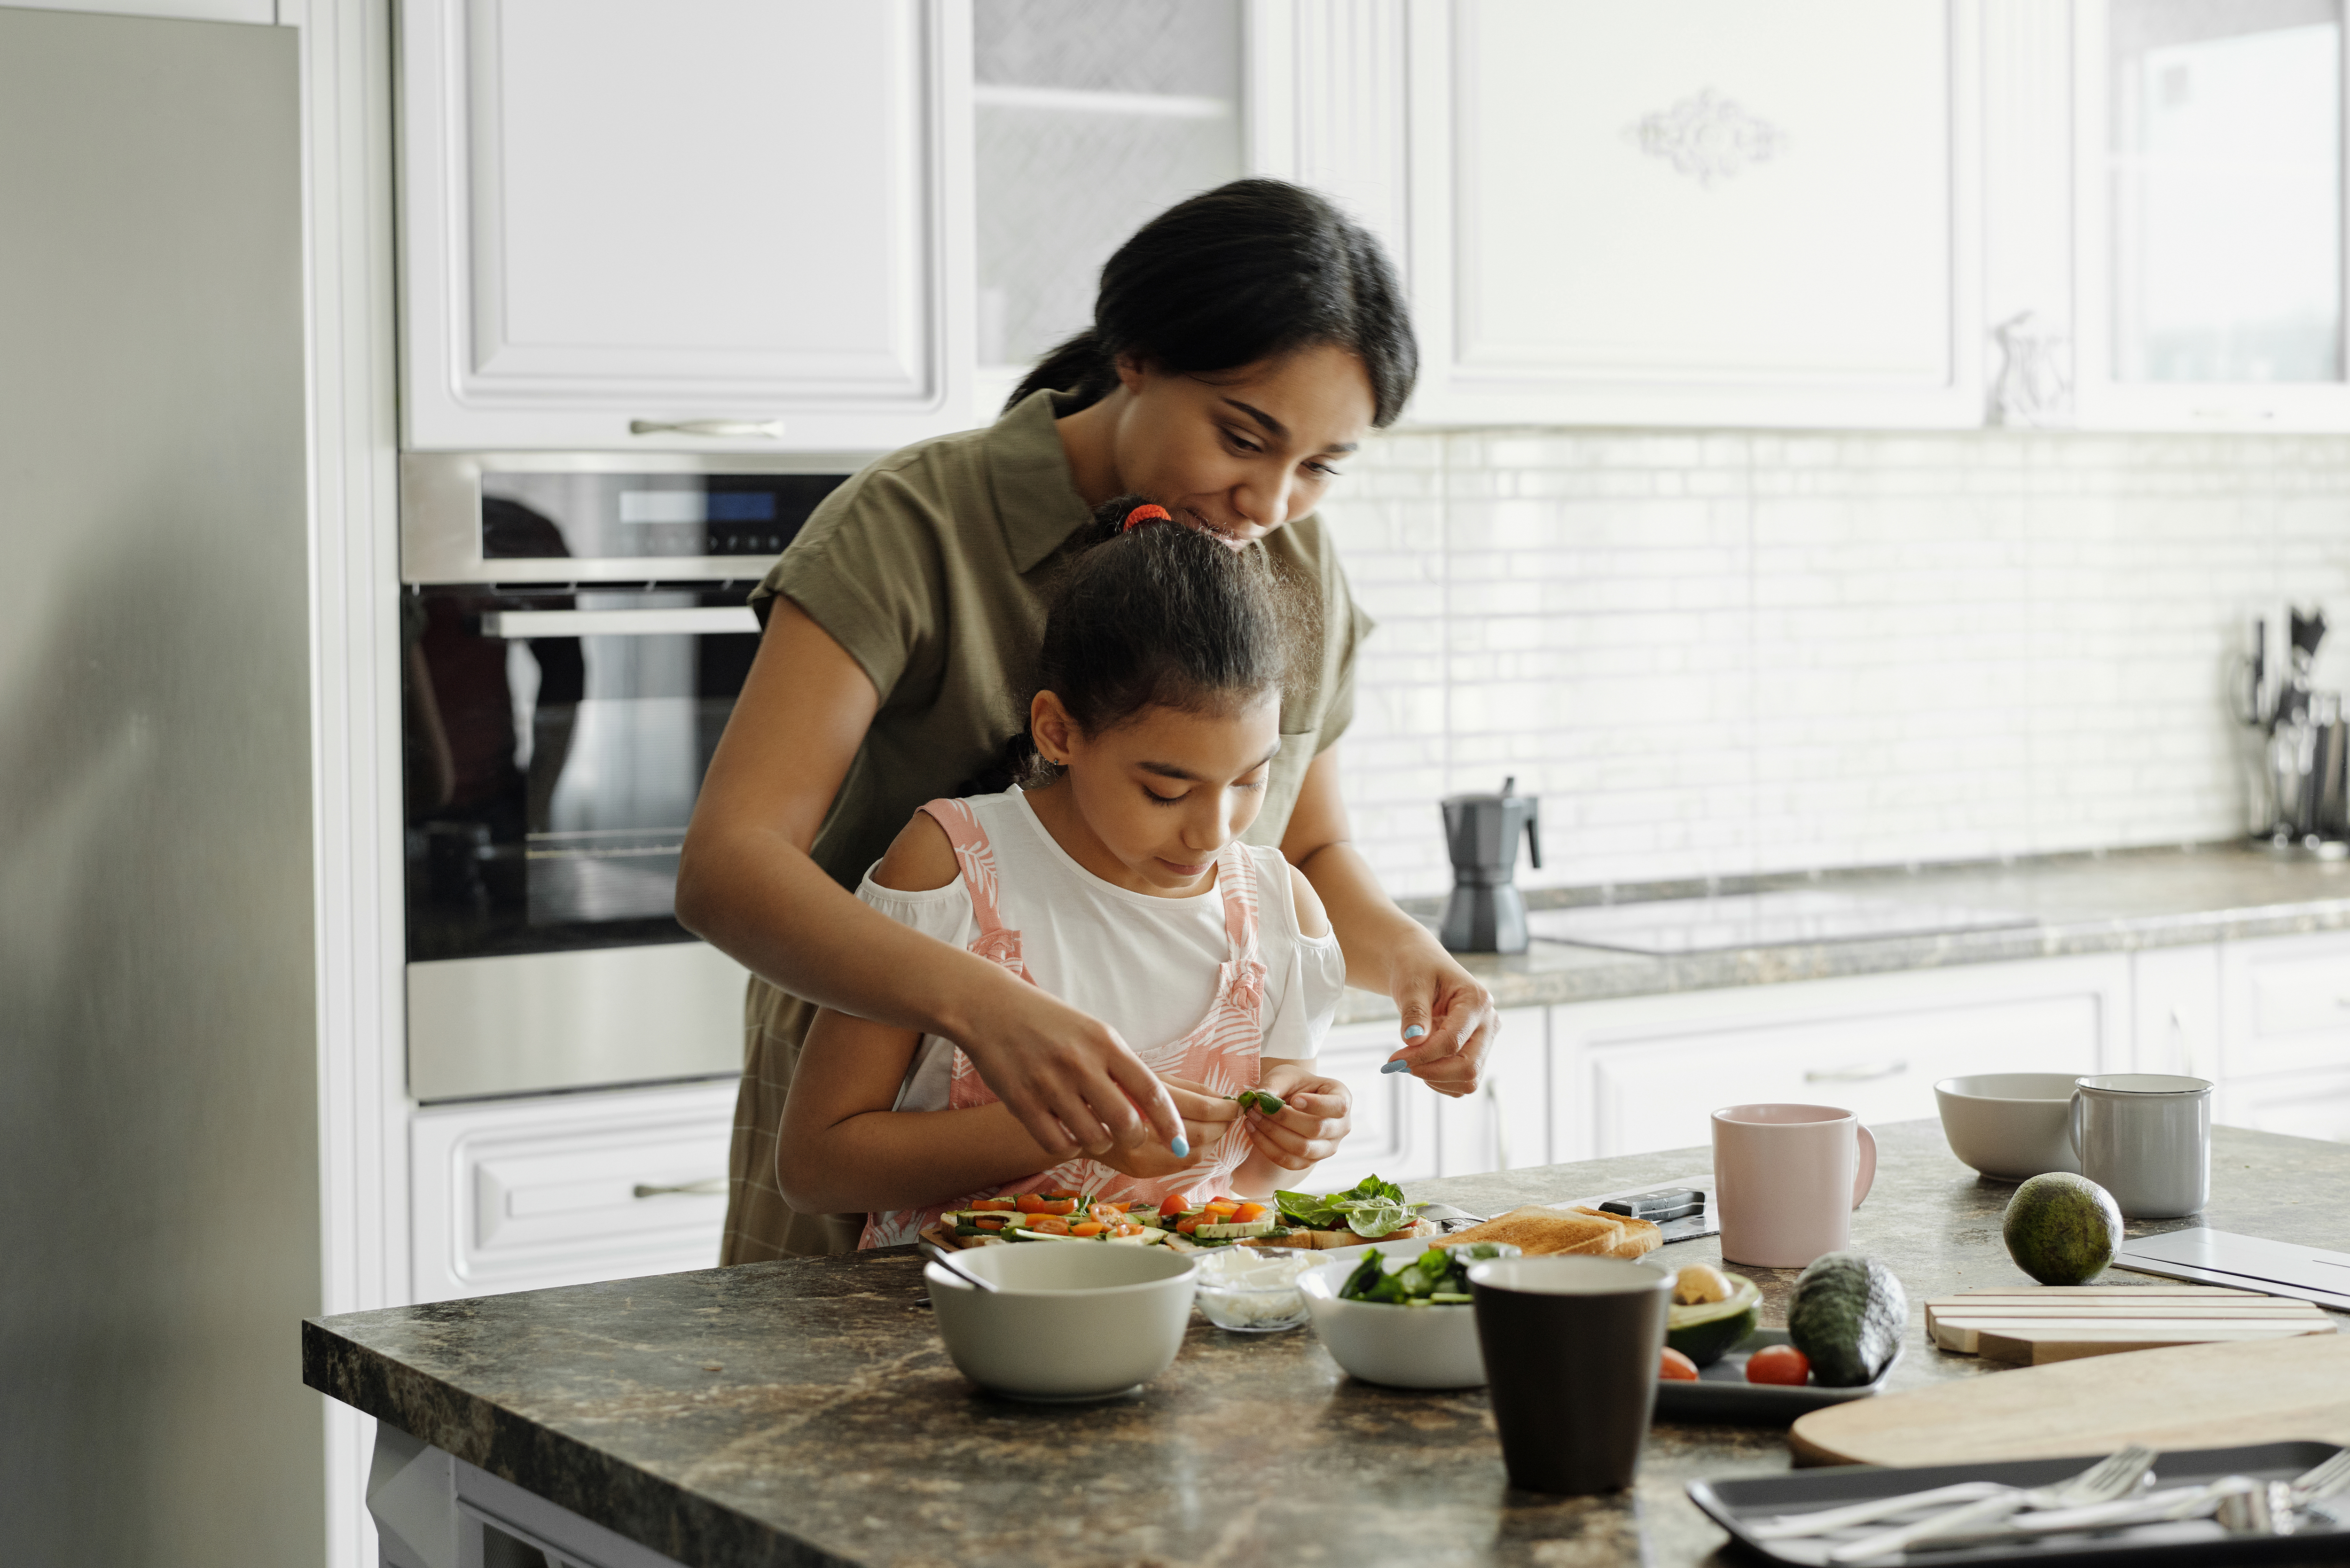 mother-and-daughter-preparing-avocado-toast-4259707-1